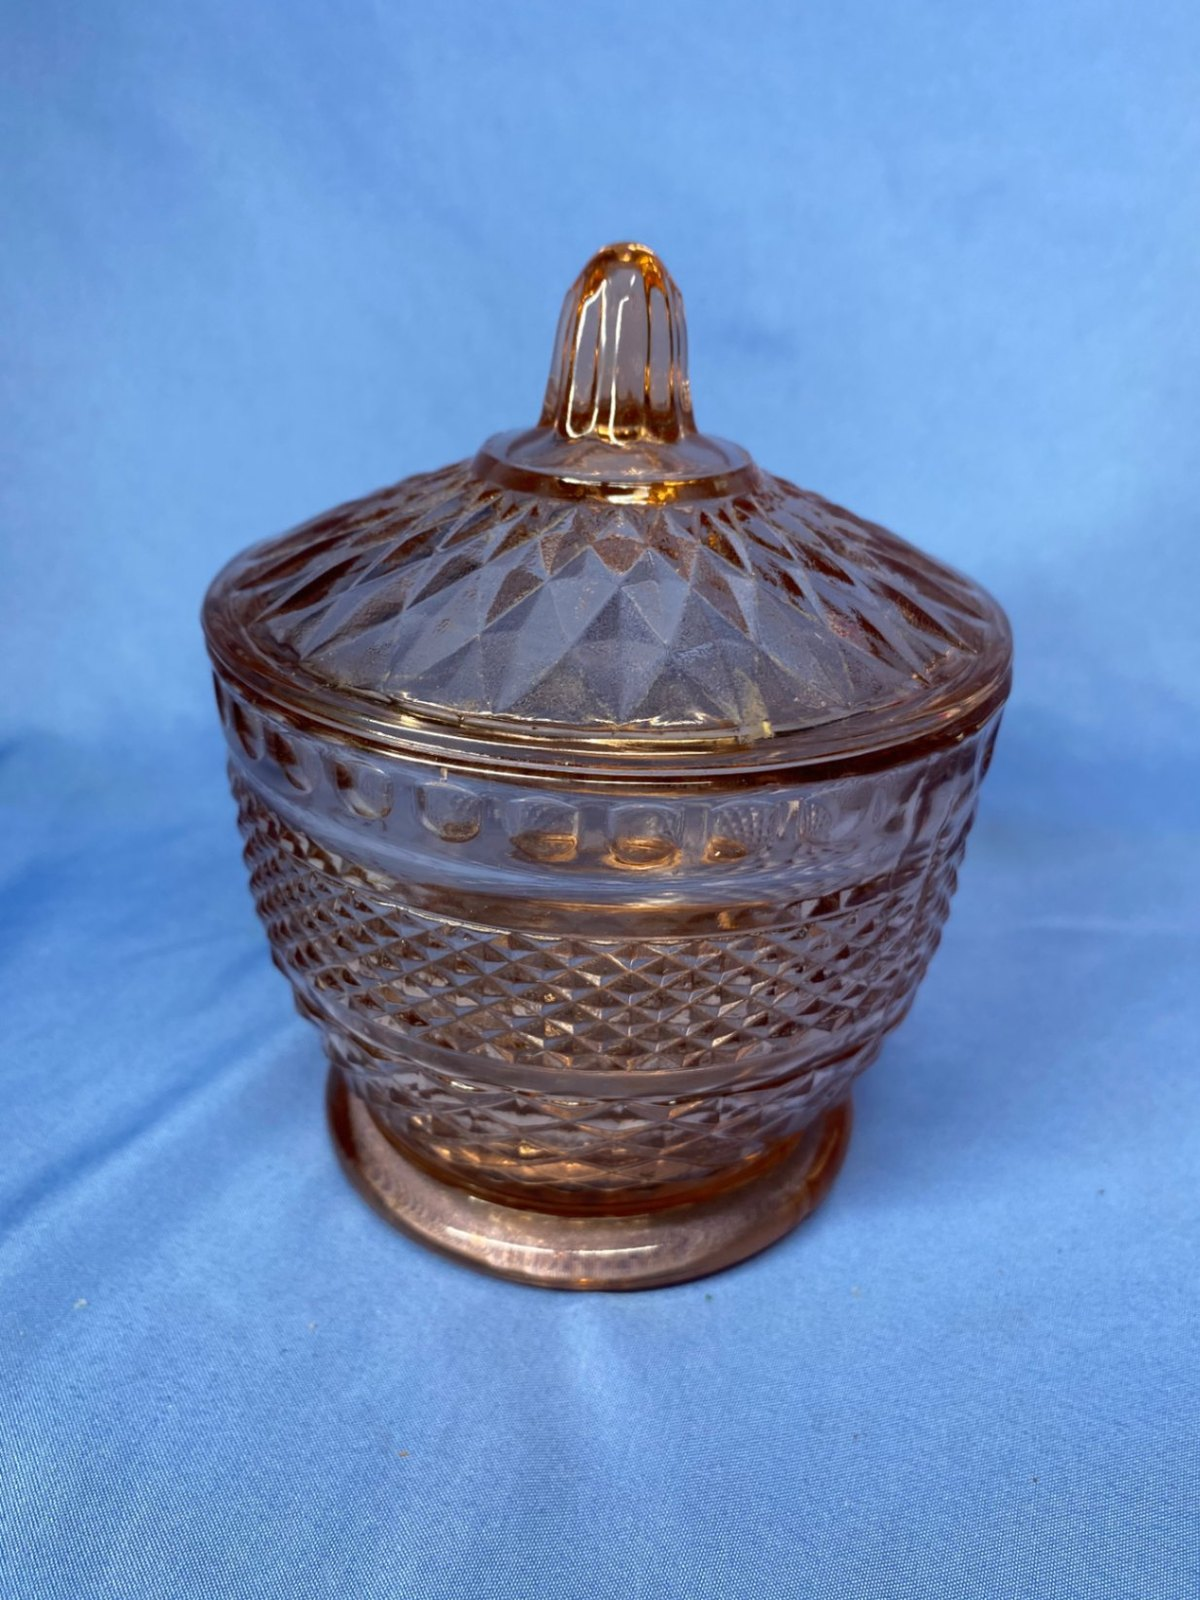 Primary image for Vintage Pink Crystal Sugar Bowl With Acorn Stem Lid Diamond Shape Cut Pattern